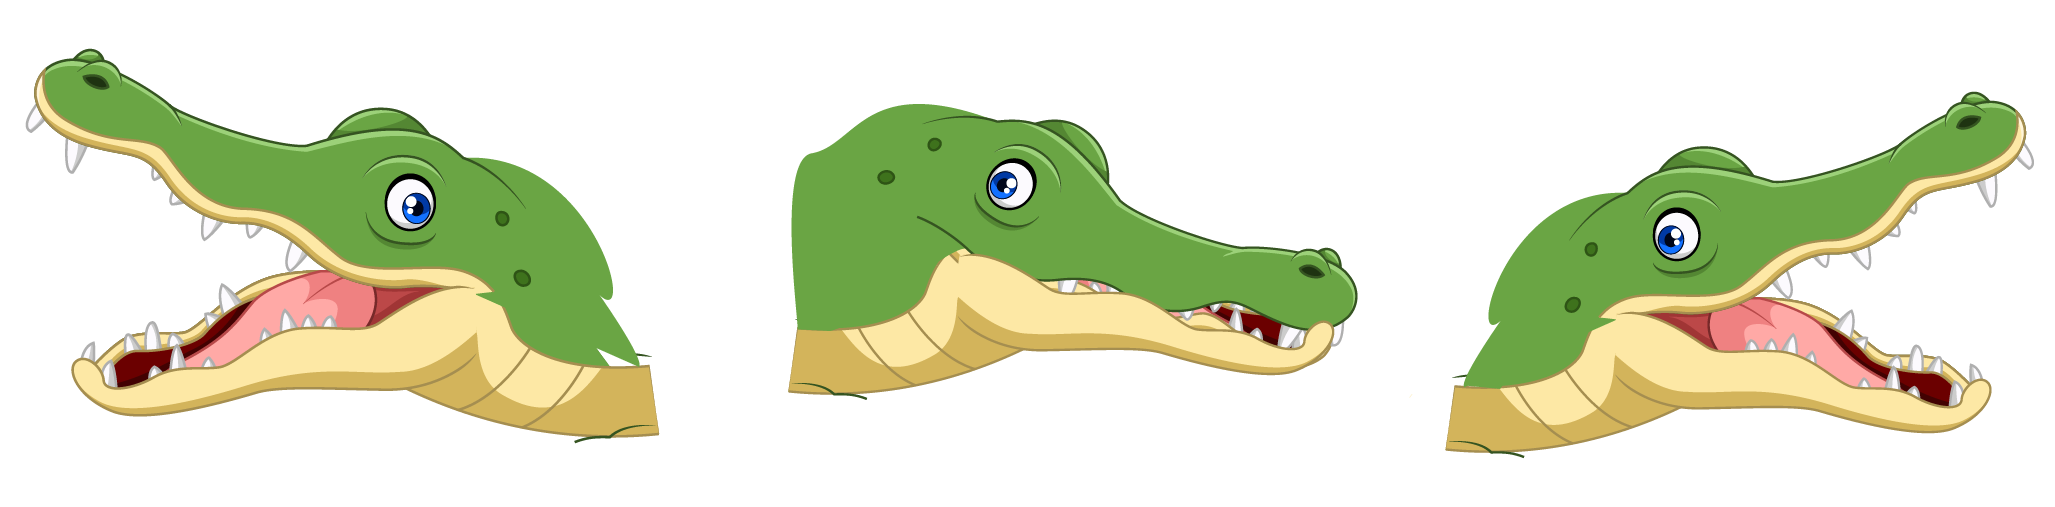 Understand greater than sign using an alligator's open mouth